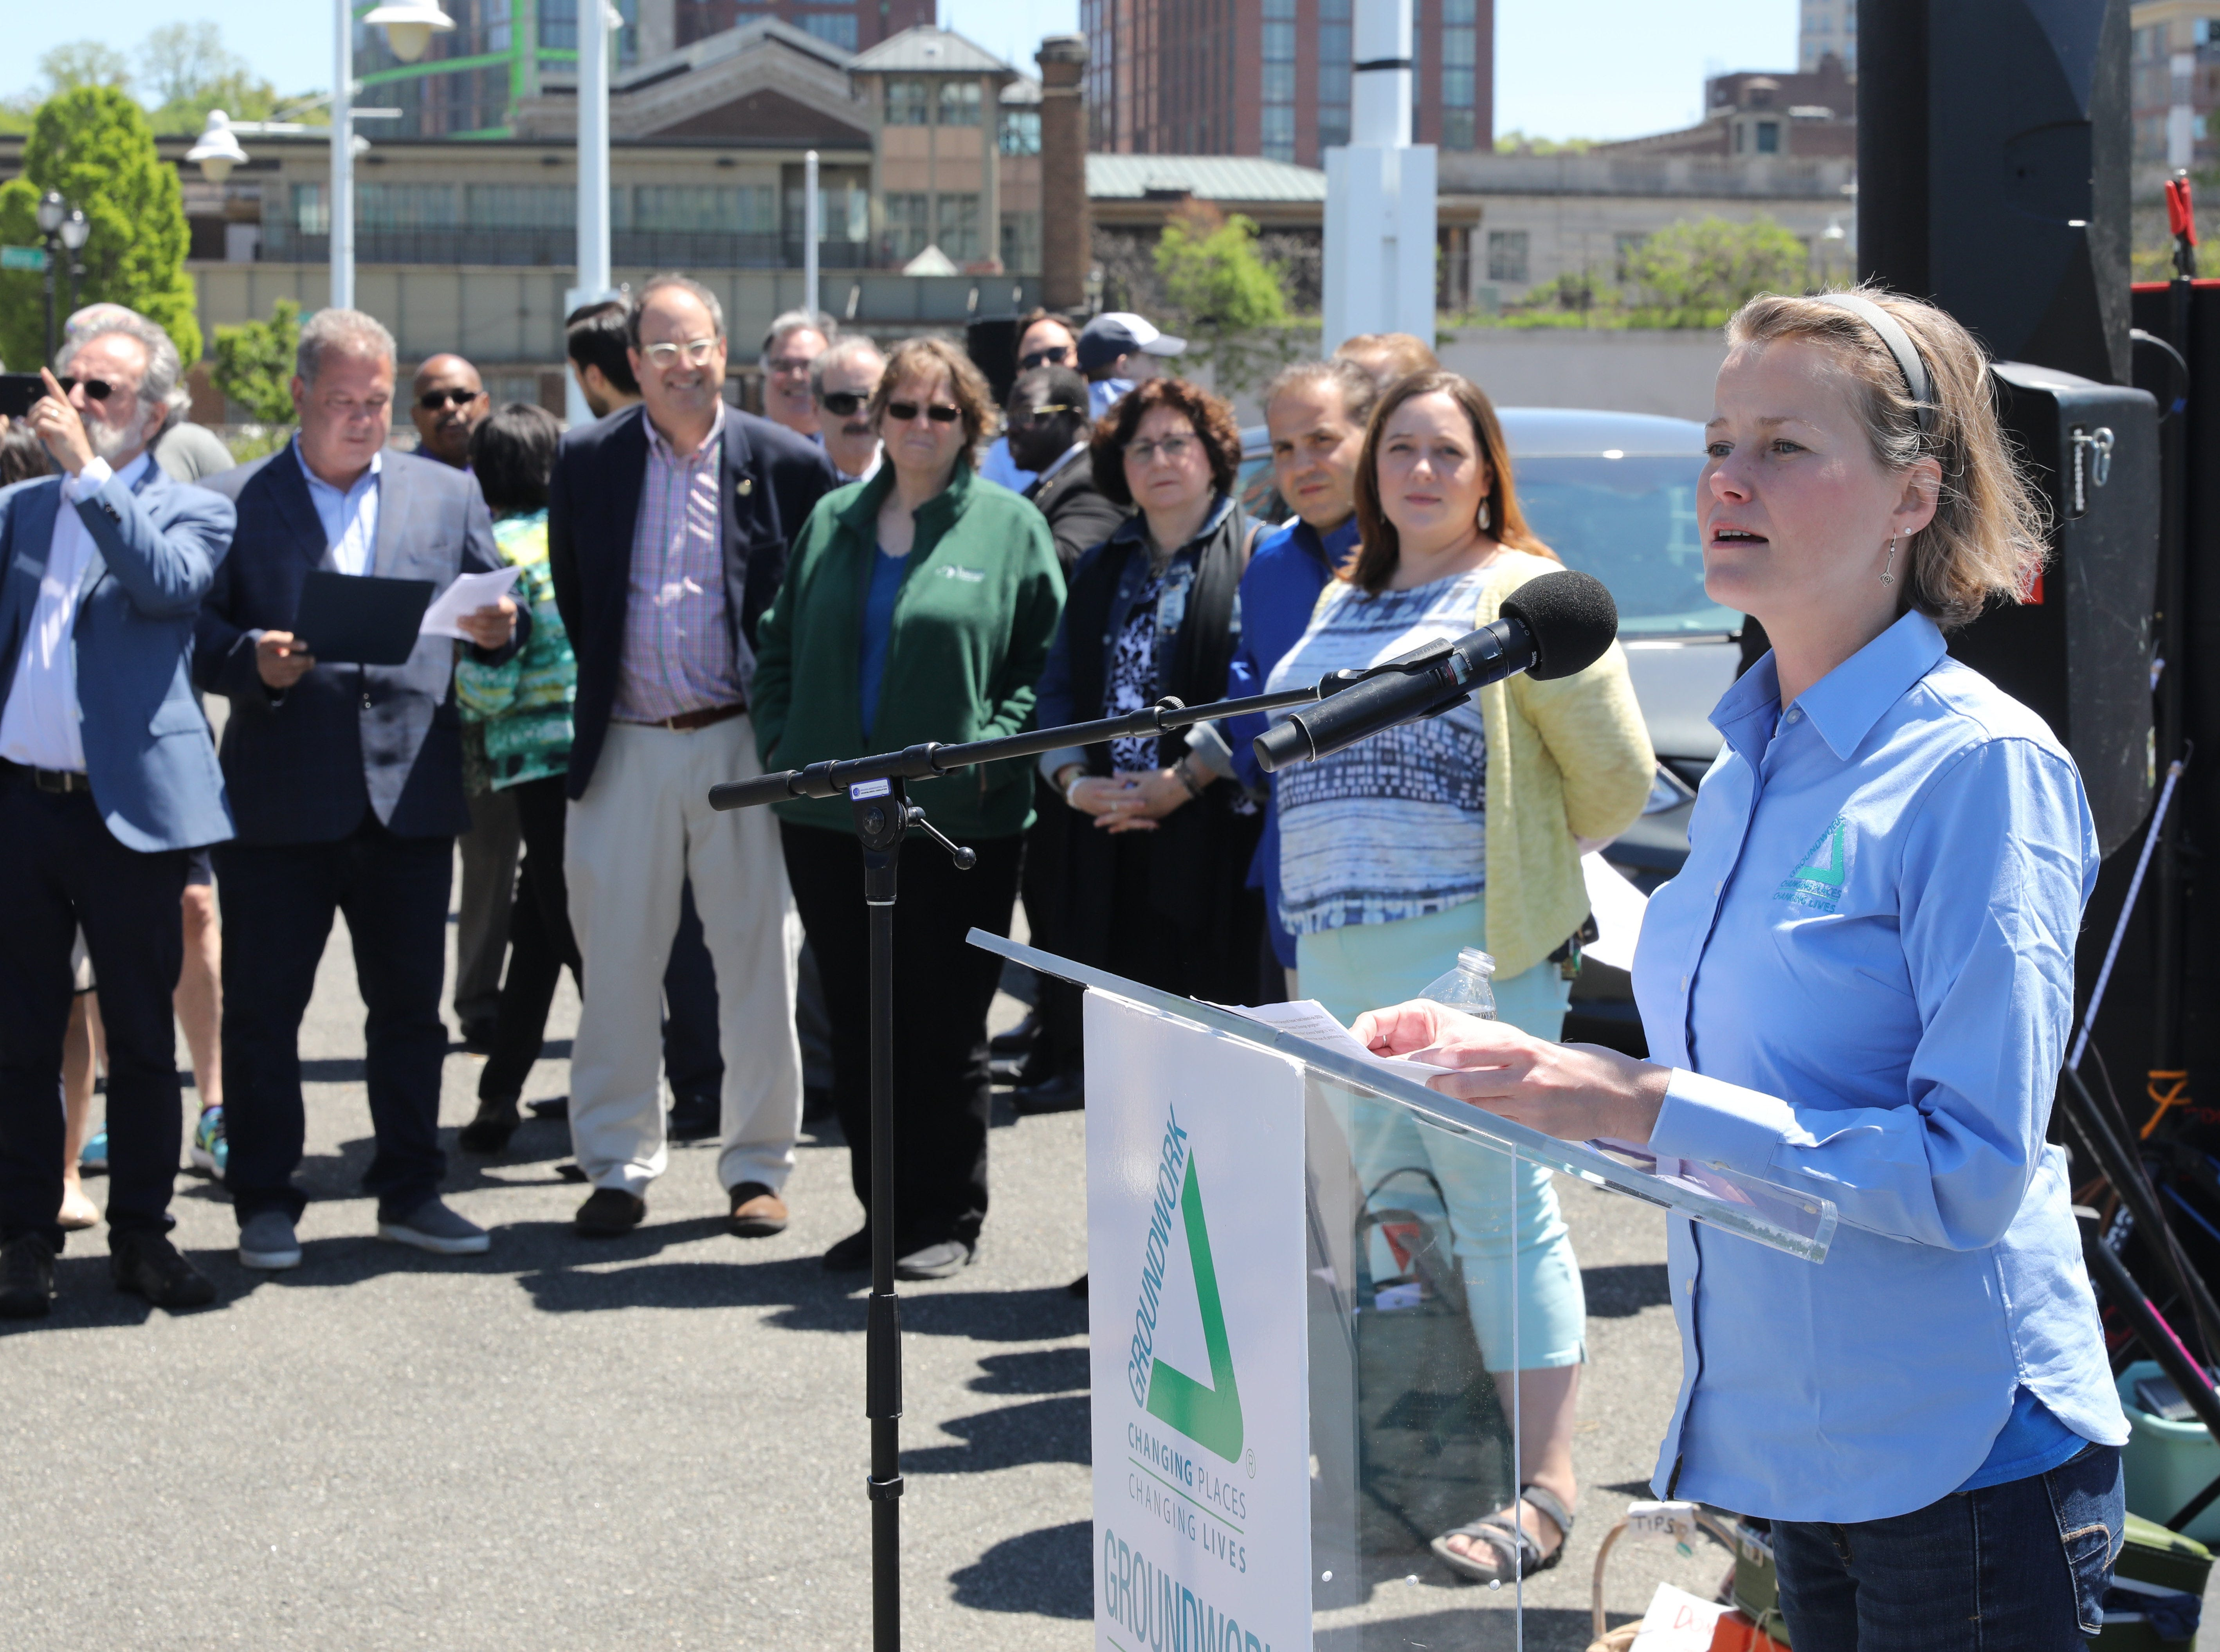 Brigitte Griswold, the executive director of Groundwork Hudson Valley, welcomes the crowd to the Science Barge, as it enjoys its 11th annual opening on the Hudson River in Yonkers, May 11, 2019. The floating environmental education center has undergone an almost $1million enhancement, completed over the past two years.